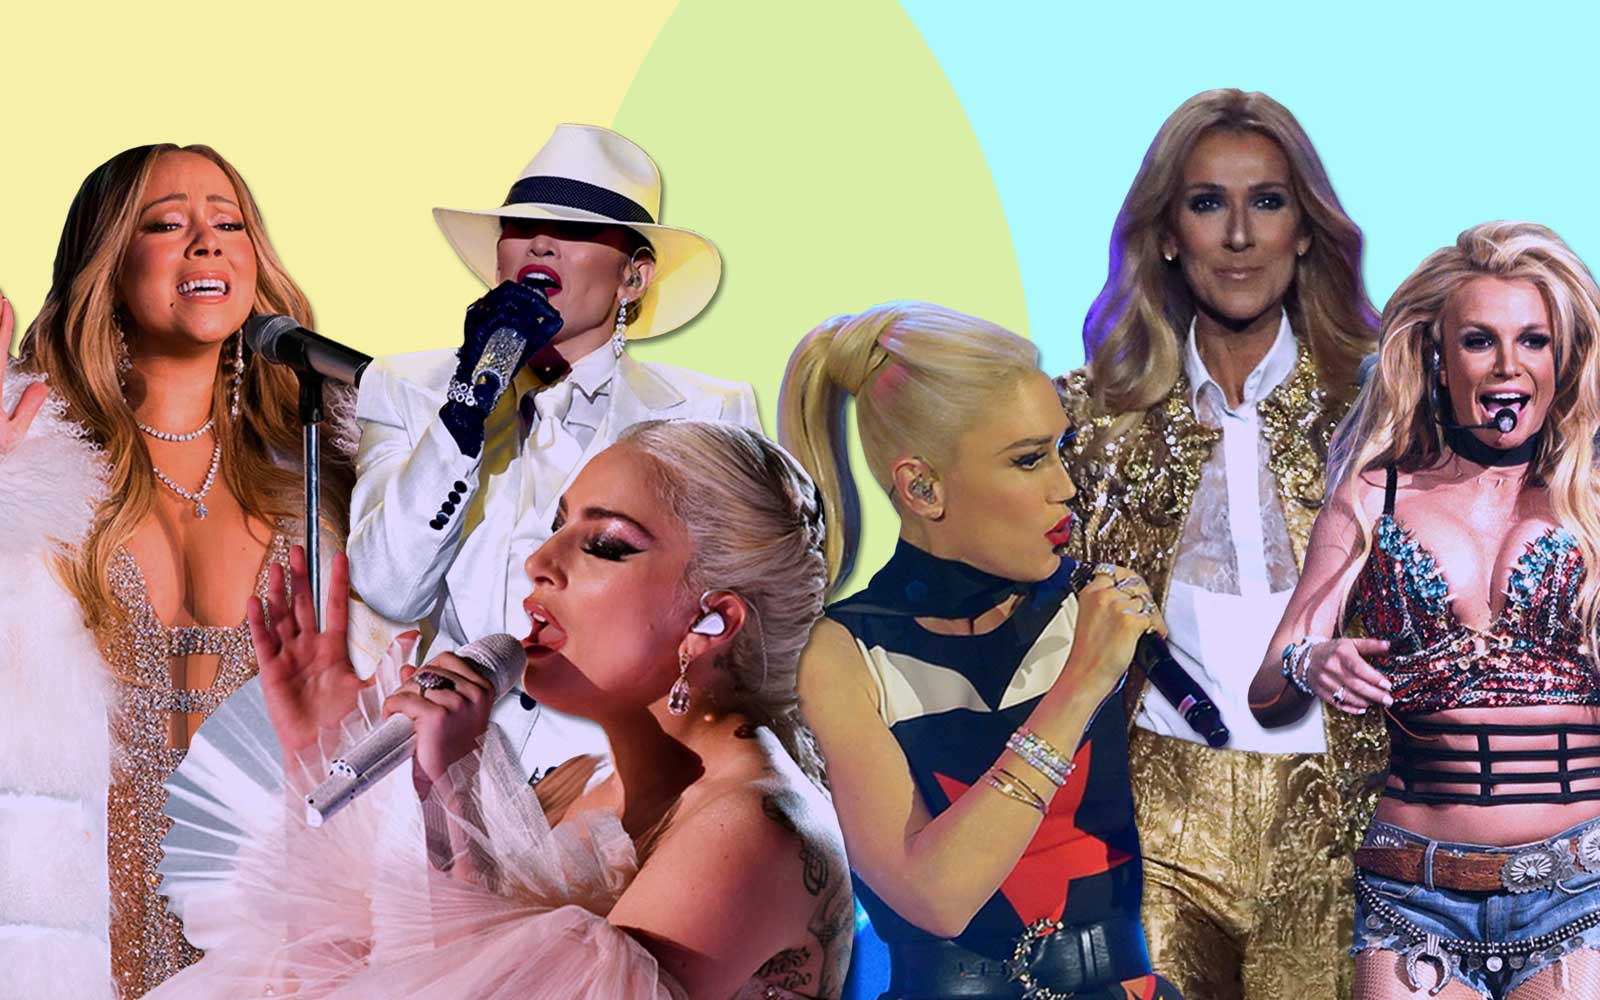 From Left: Mariah Carey, J Lo, Lady Gaga, Gwen Stefani, Celine Dion and Britney Spears